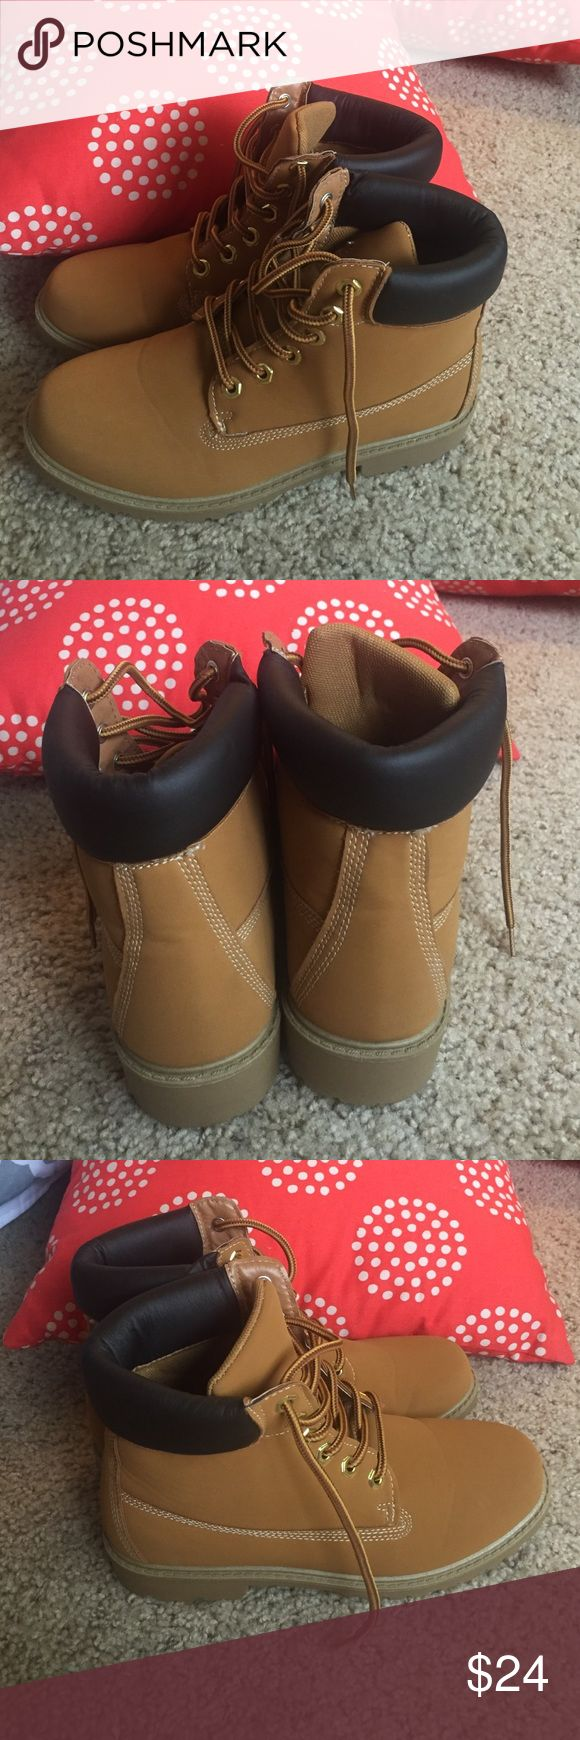 Fake timberland boots Fake timberland boots. Not authentic. Super good condition. Worn one time. Look brand new. Shoes